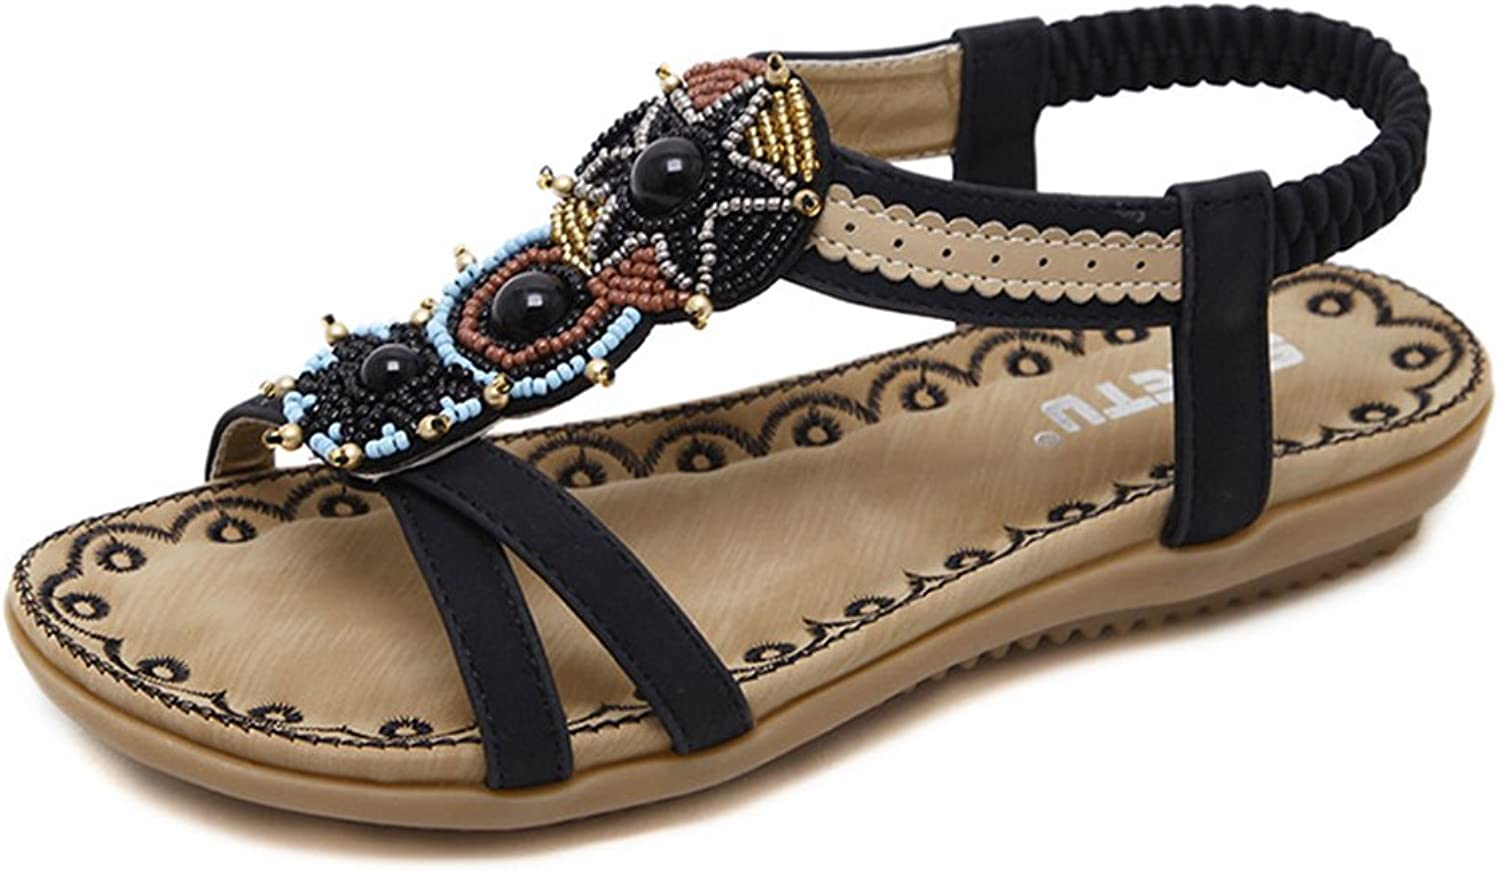 Mobnau Women's Leisure Leather Jeweled Flat Sandals